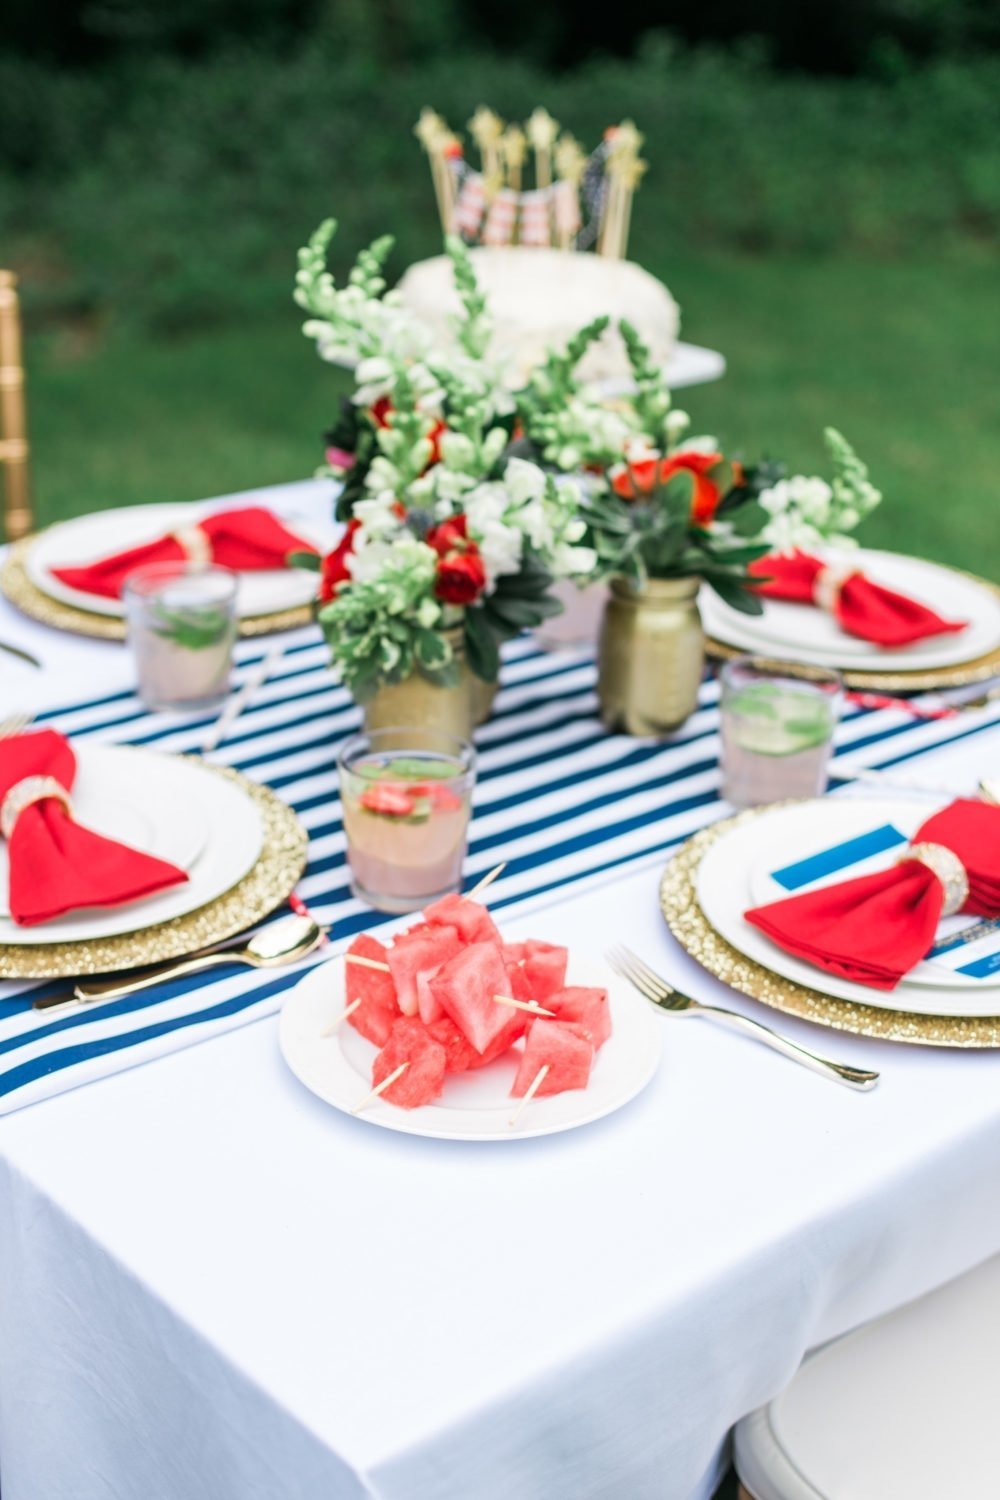 10 Beautiful Red White And Blue Party Ideas memorial day party ideas mdw table red white and blue memorial day 1 2020